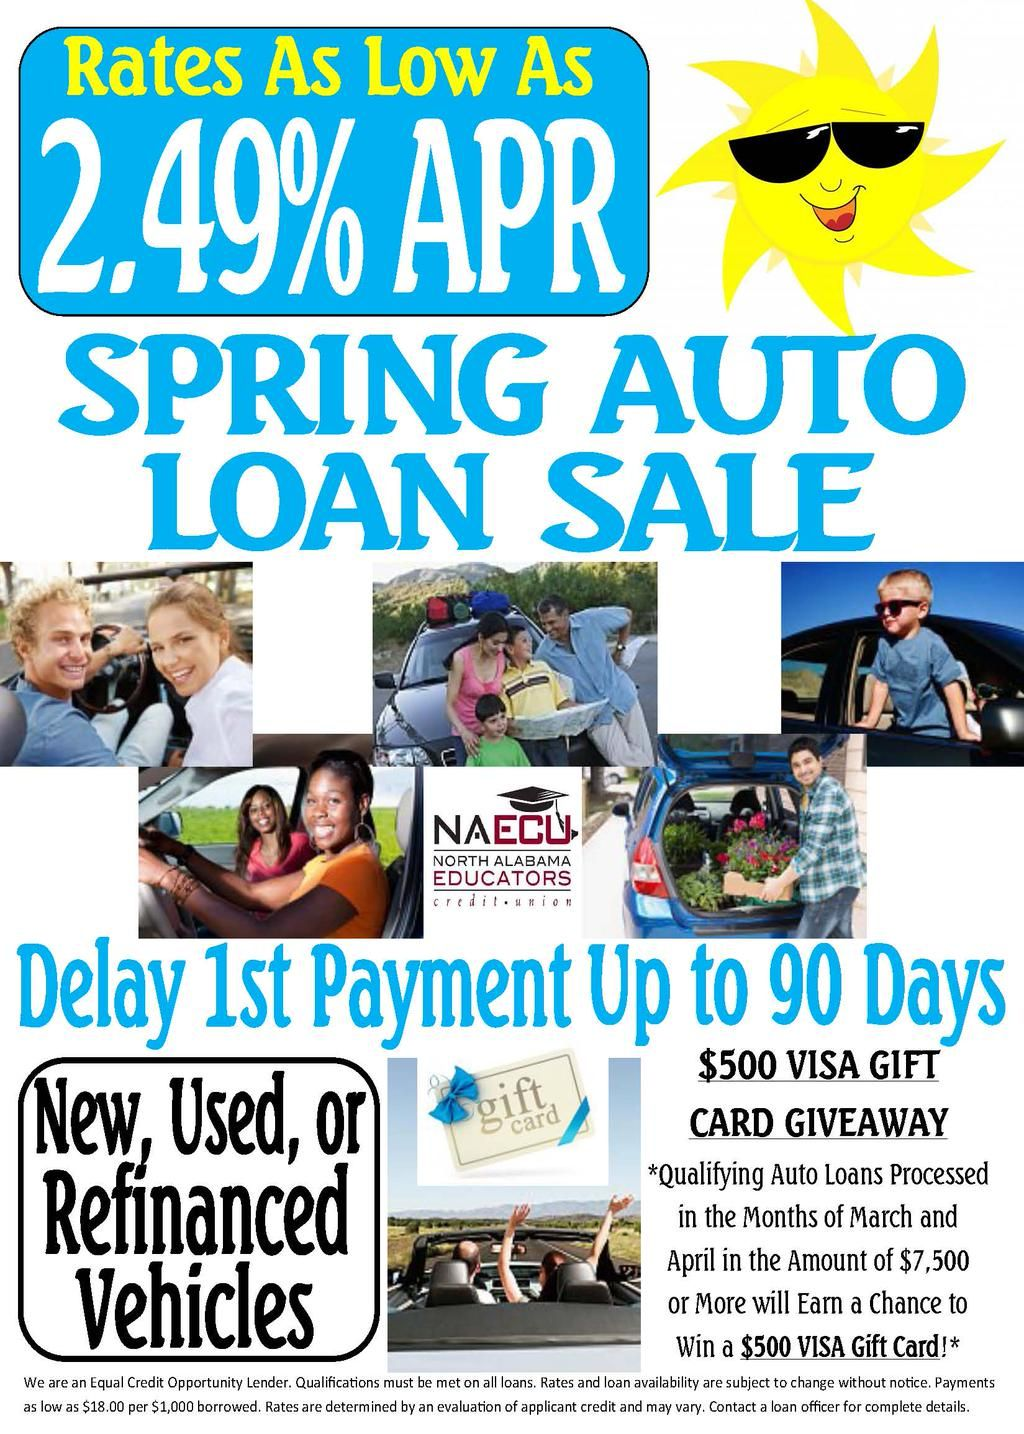 Spring Auto Loan Sale MarchApril 2014 at North Alabama